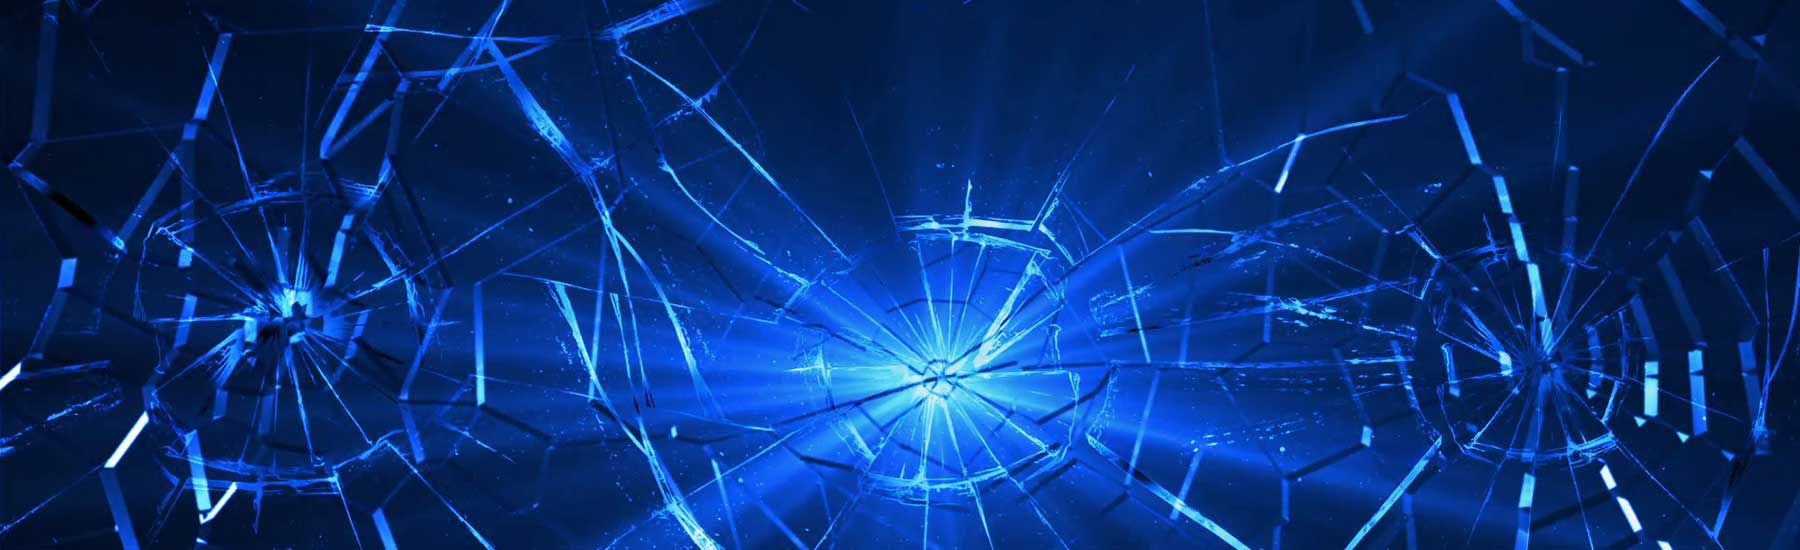 Cracked Glass PTSD Disorder